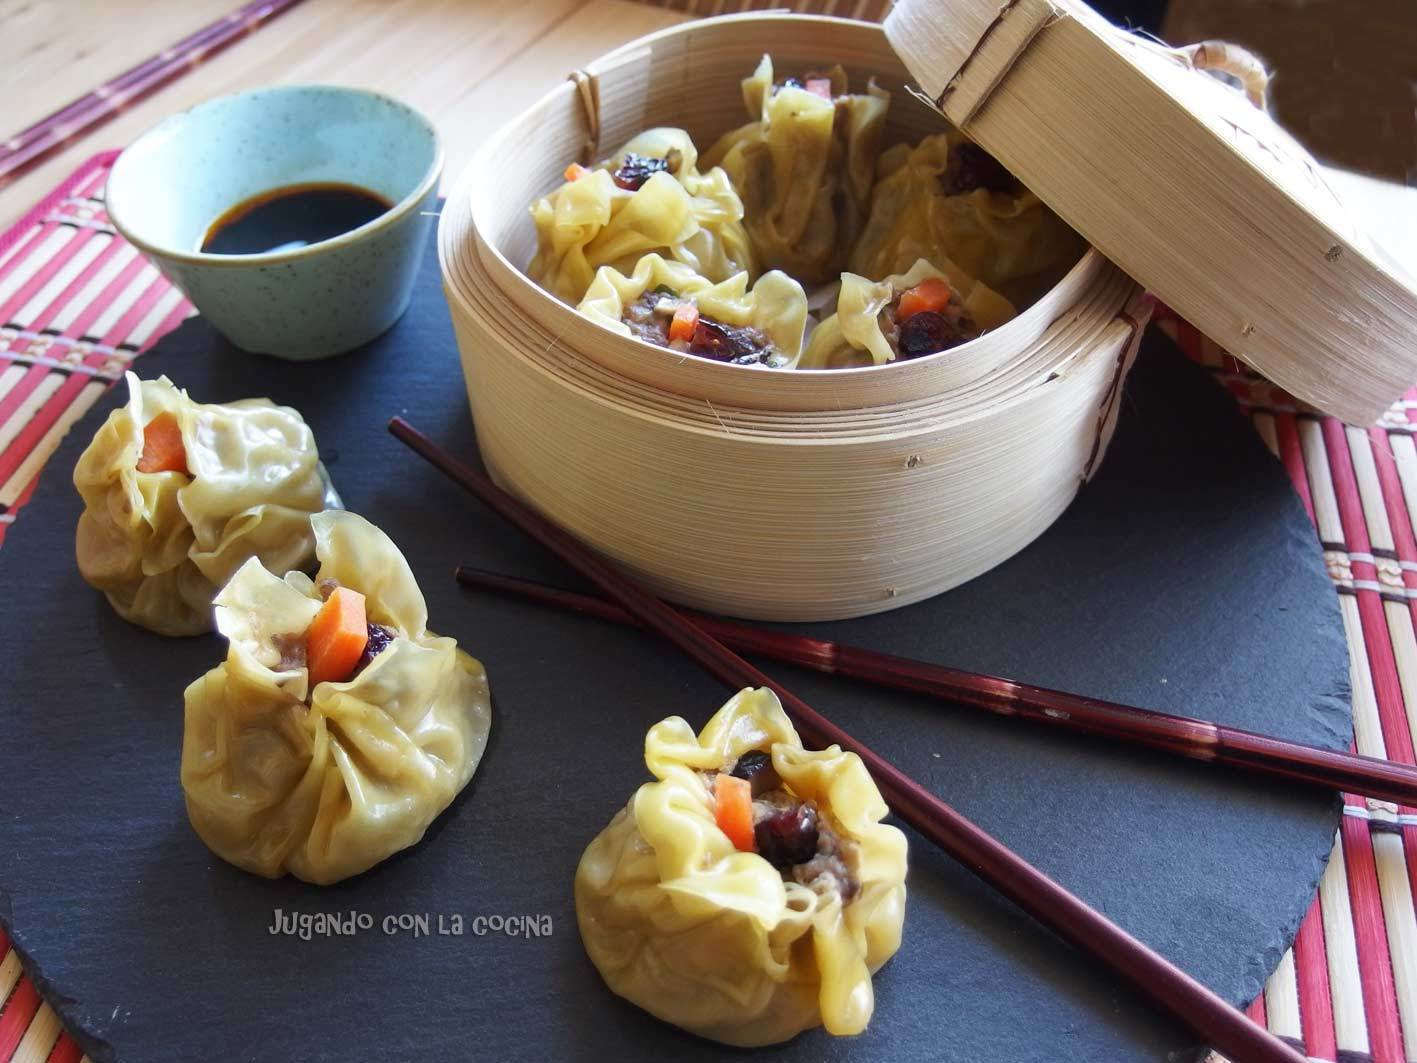 Siu Mai de cerdo y setas - Empanadillas chinas al vapor - Steamed Pork and Mushroom Siu Mai Dumplings  - Ching-He Huang